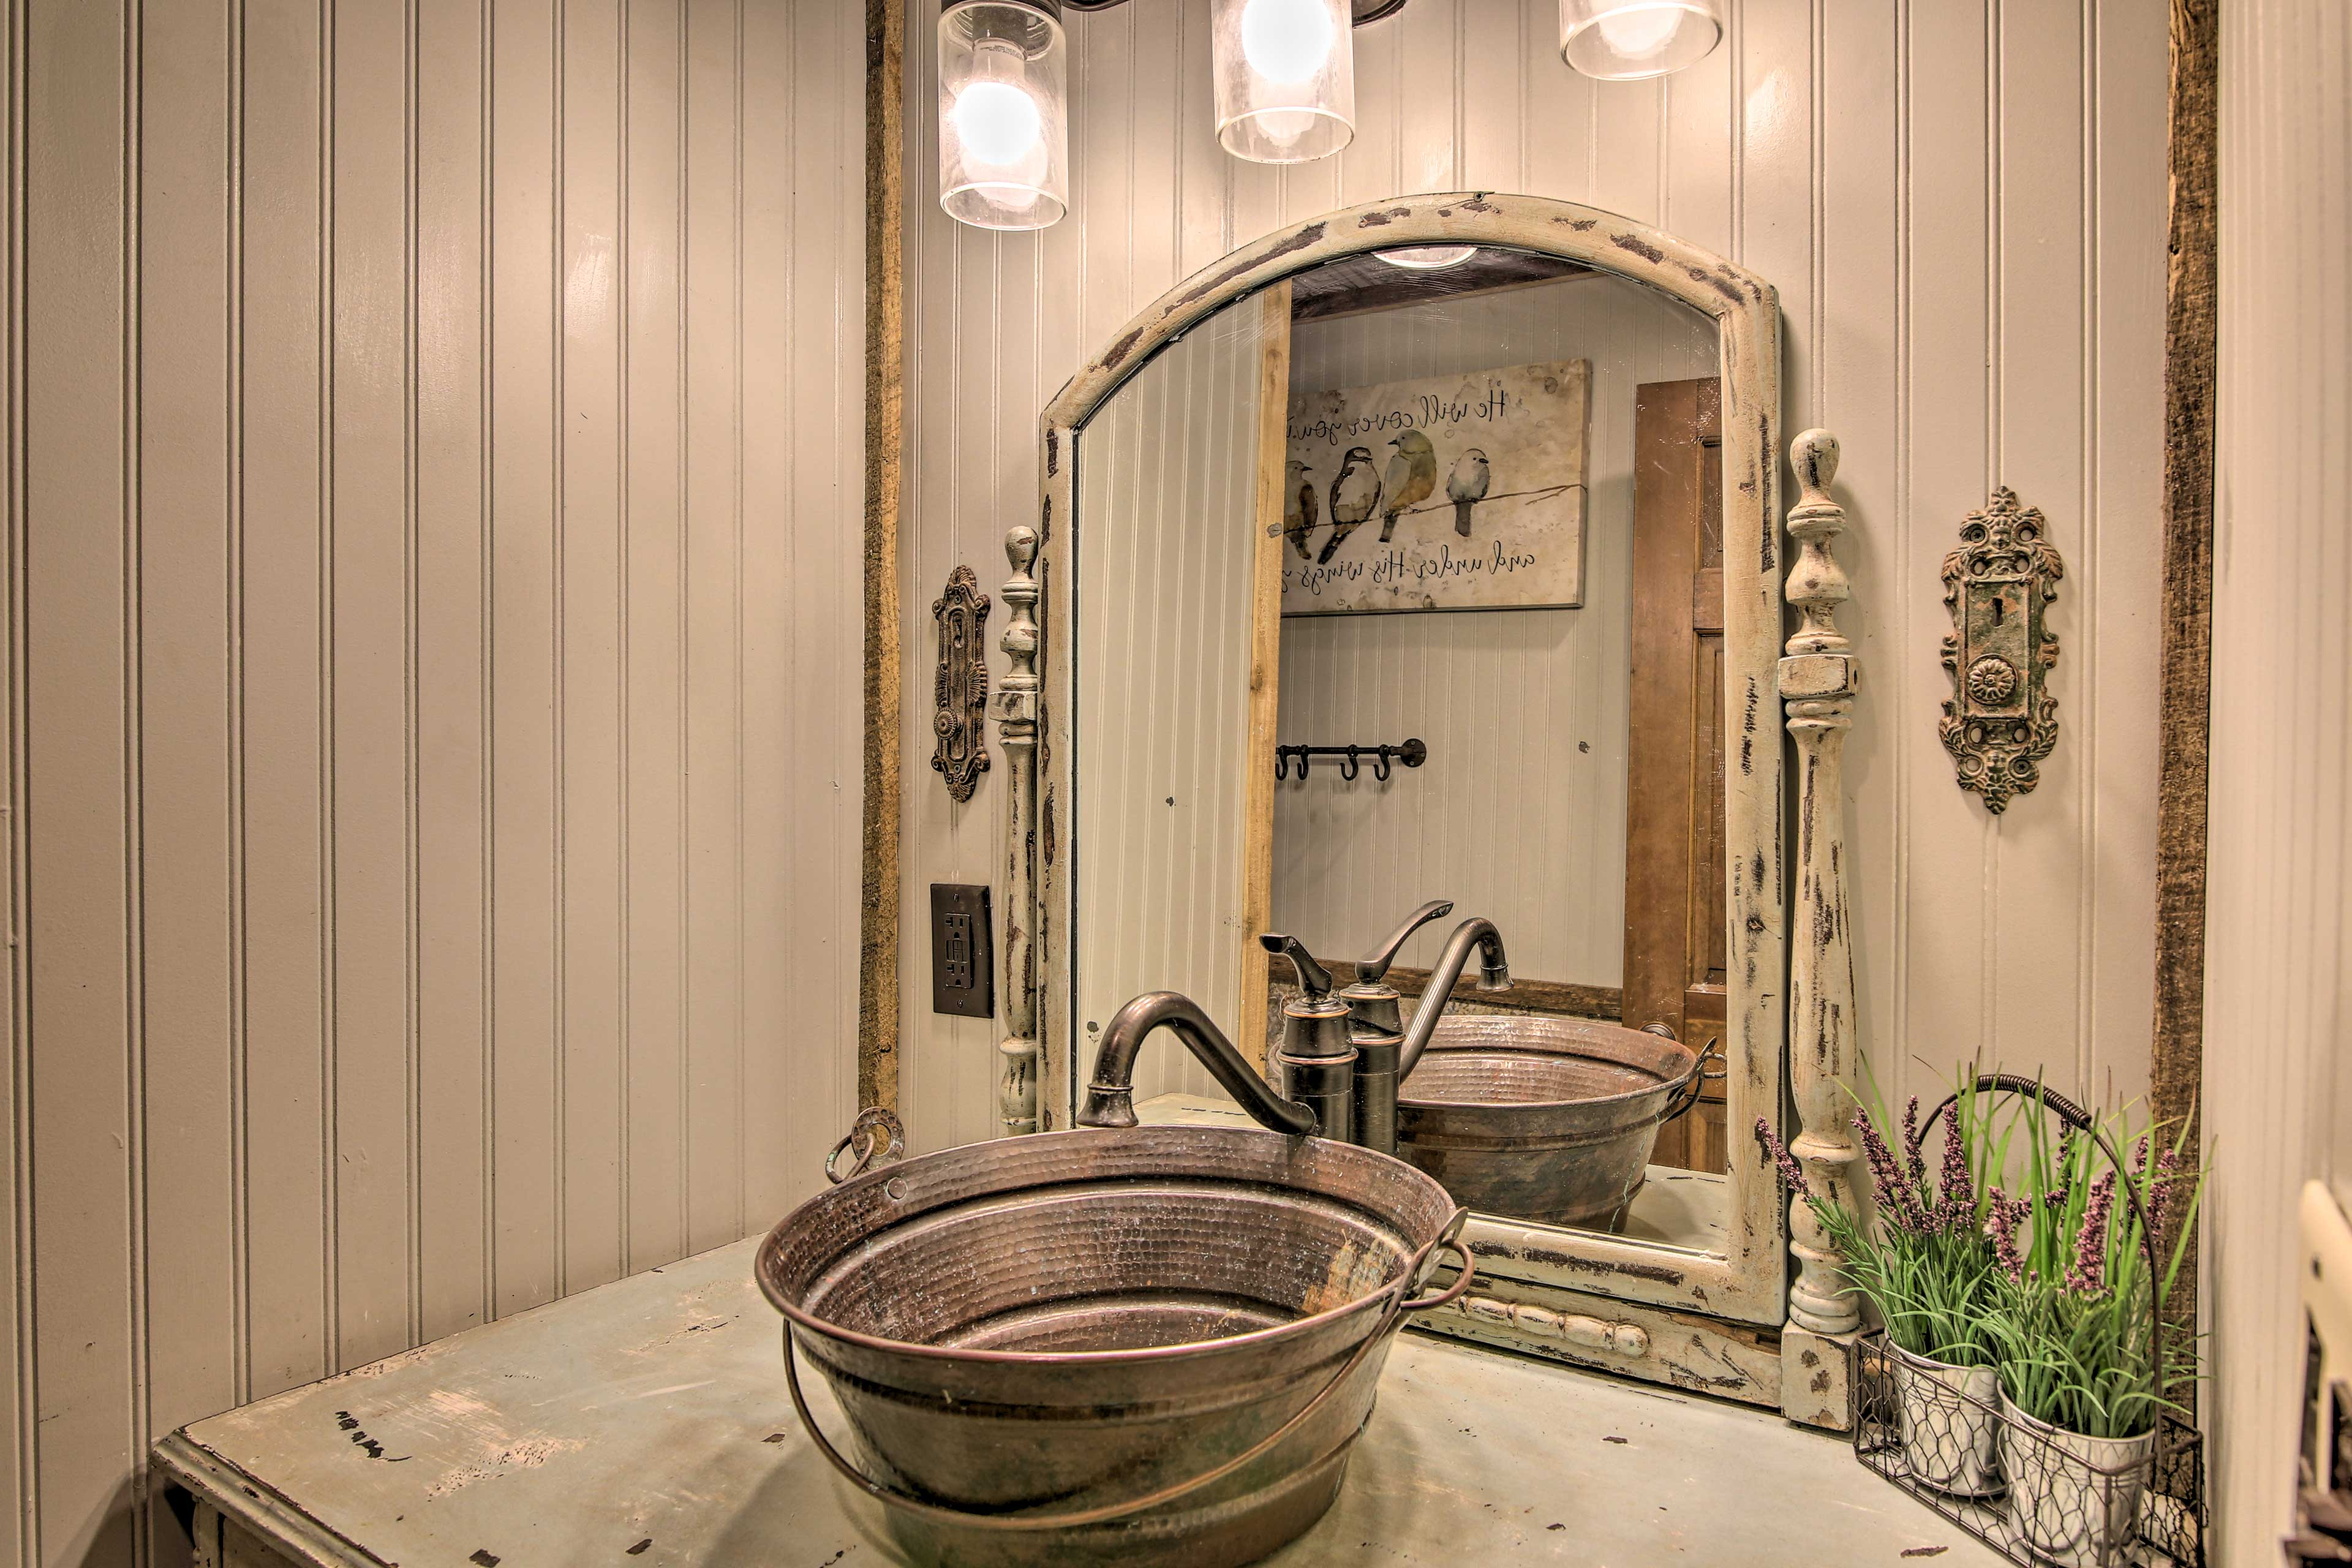 The rustic decor continue with a unique sink and mirror in the master bathroom.